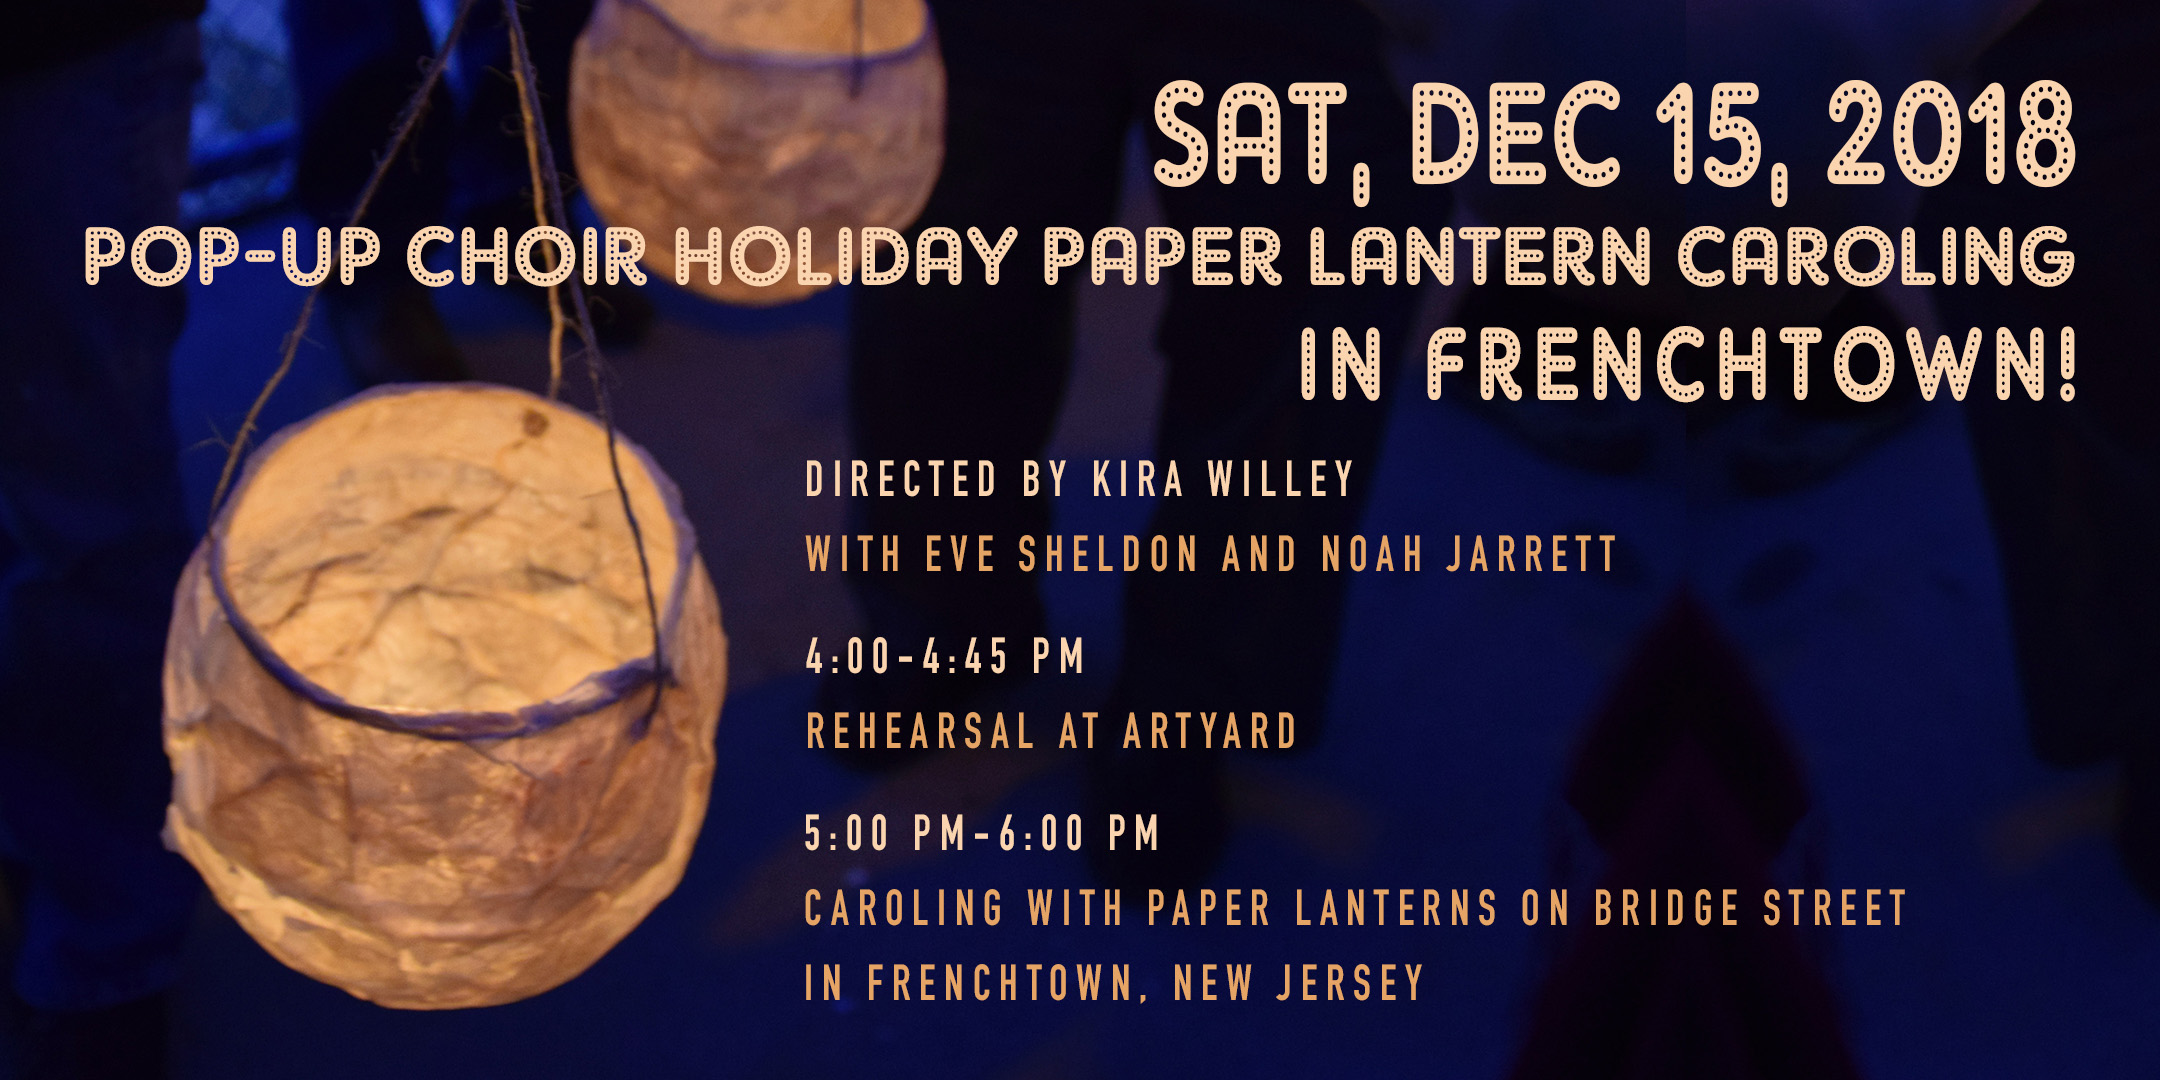 POP-UP CHOIR Holiday Paper Lantern Caroling in Frenchtown @ ArtYard's Theater | Frenchtown | New Jersey | United States